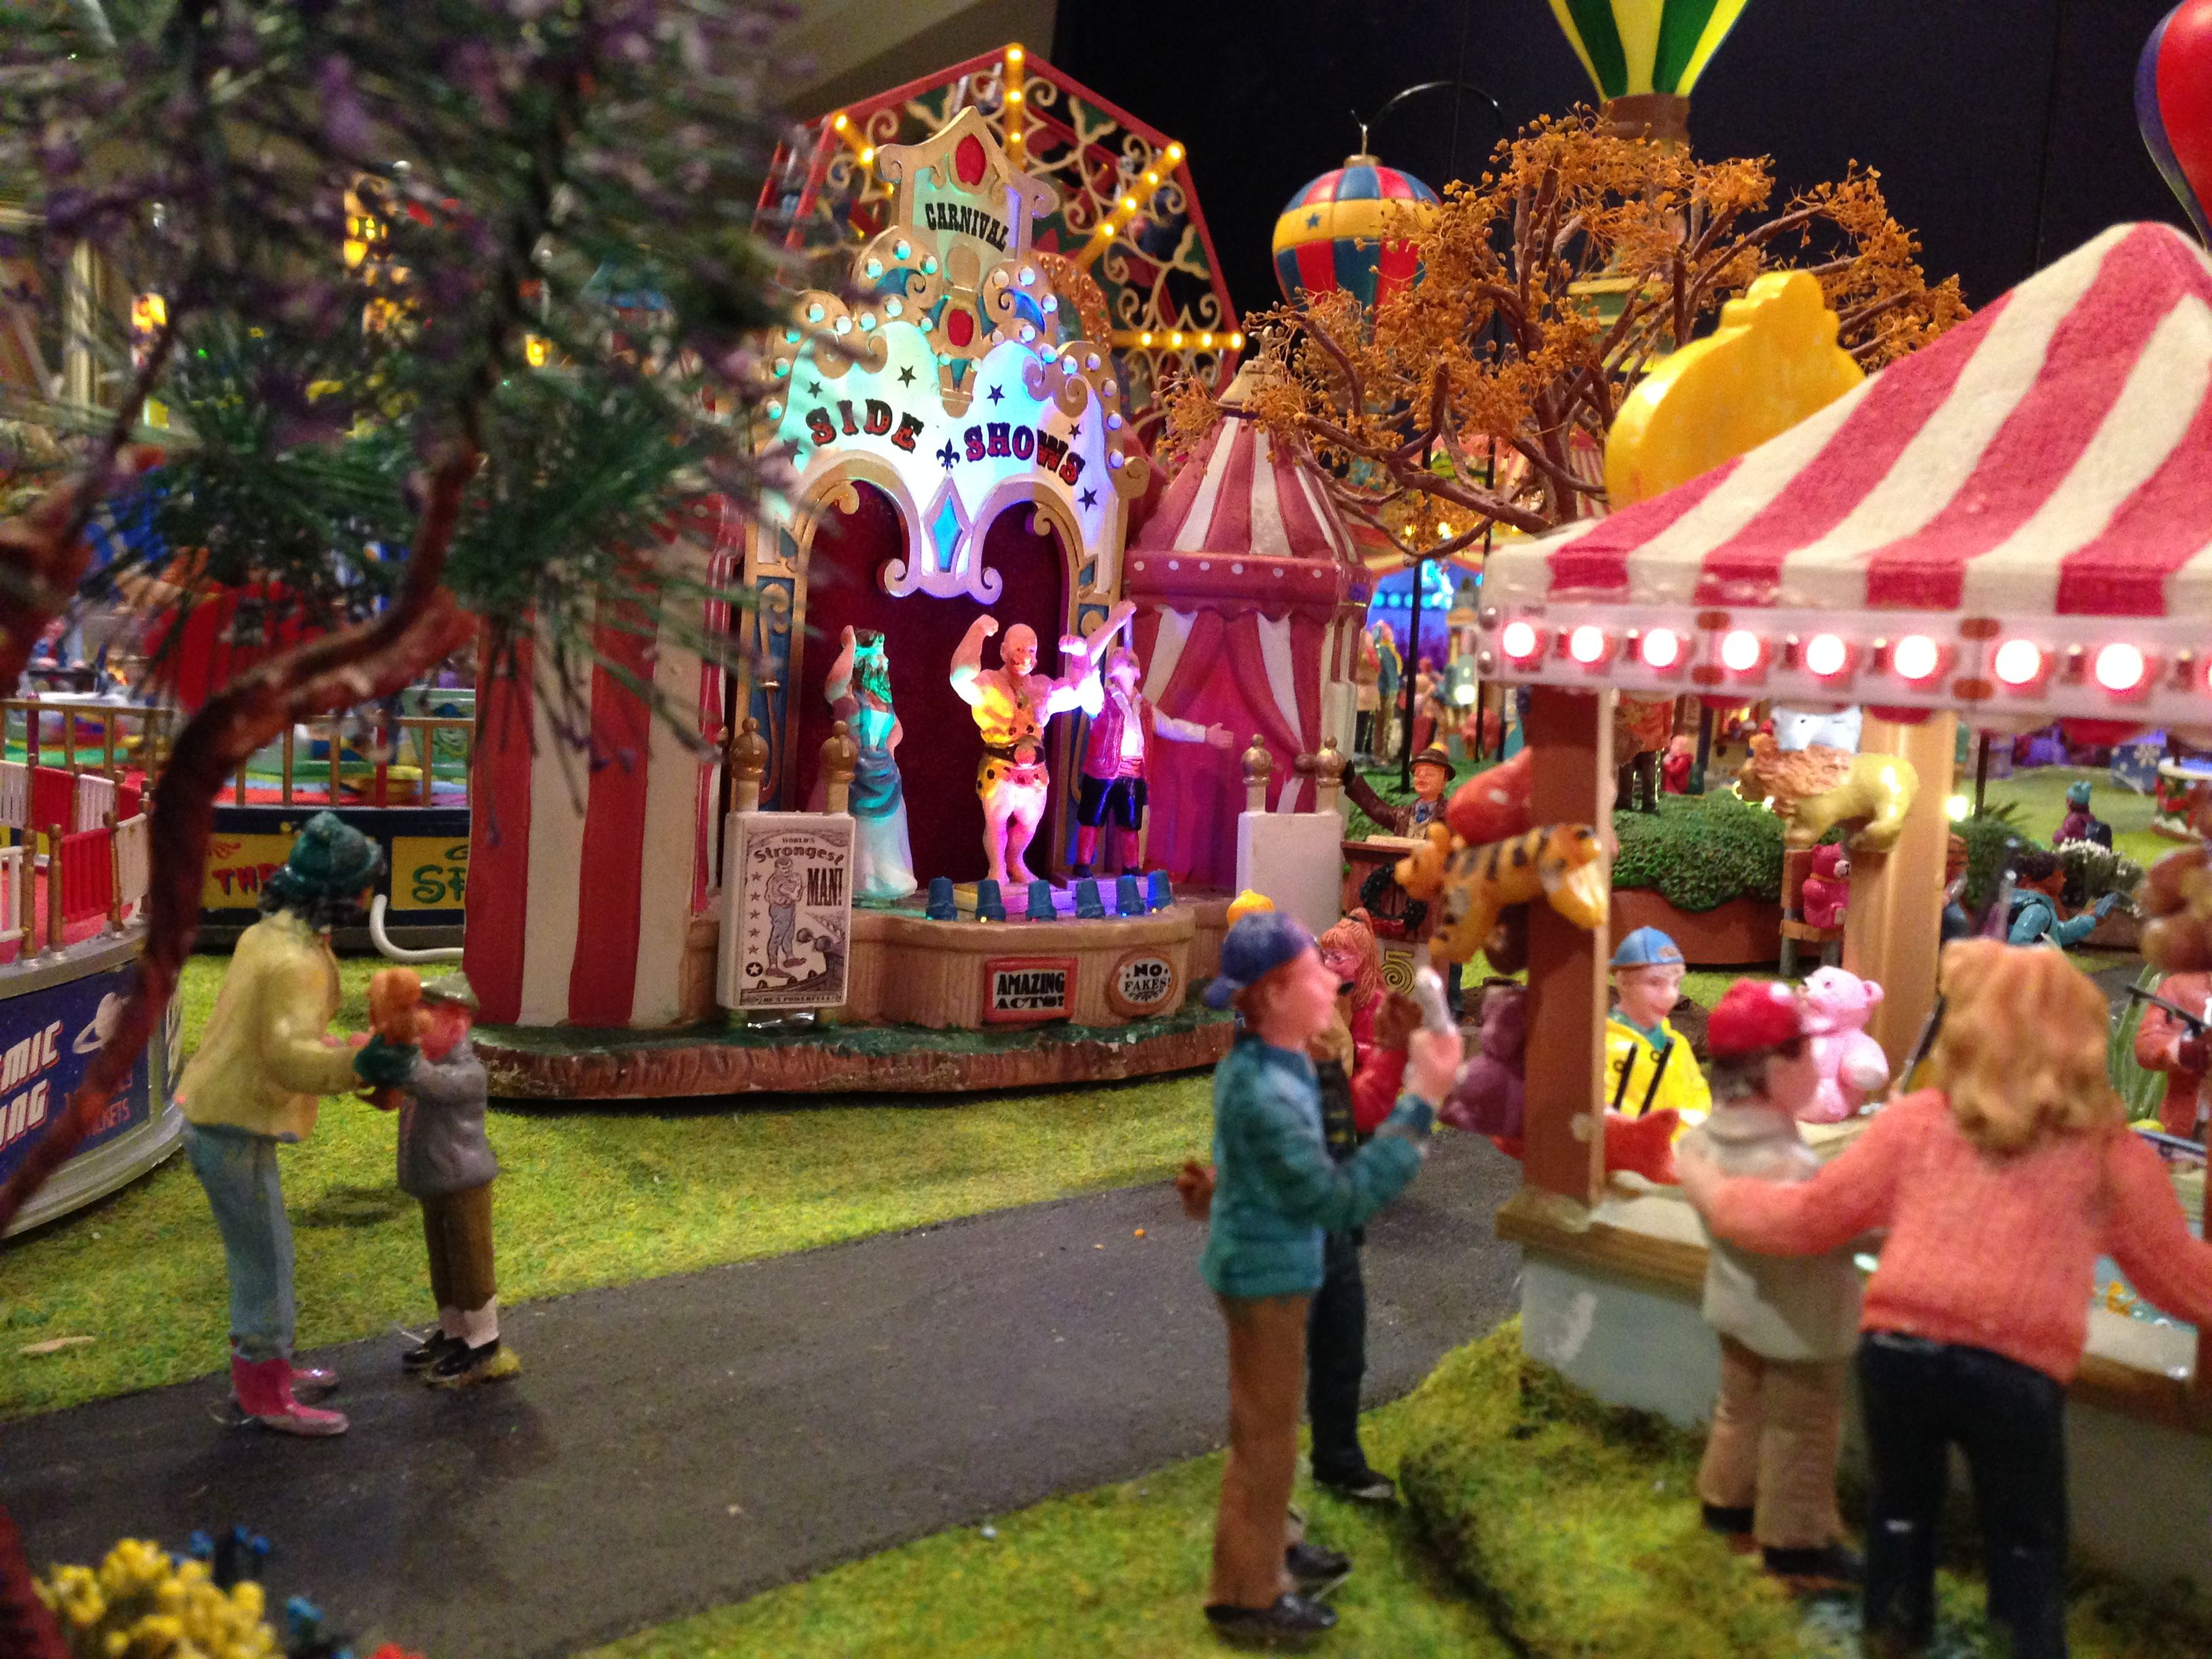 Pin by Valerie Arnold on Fairies   Christmas village ...